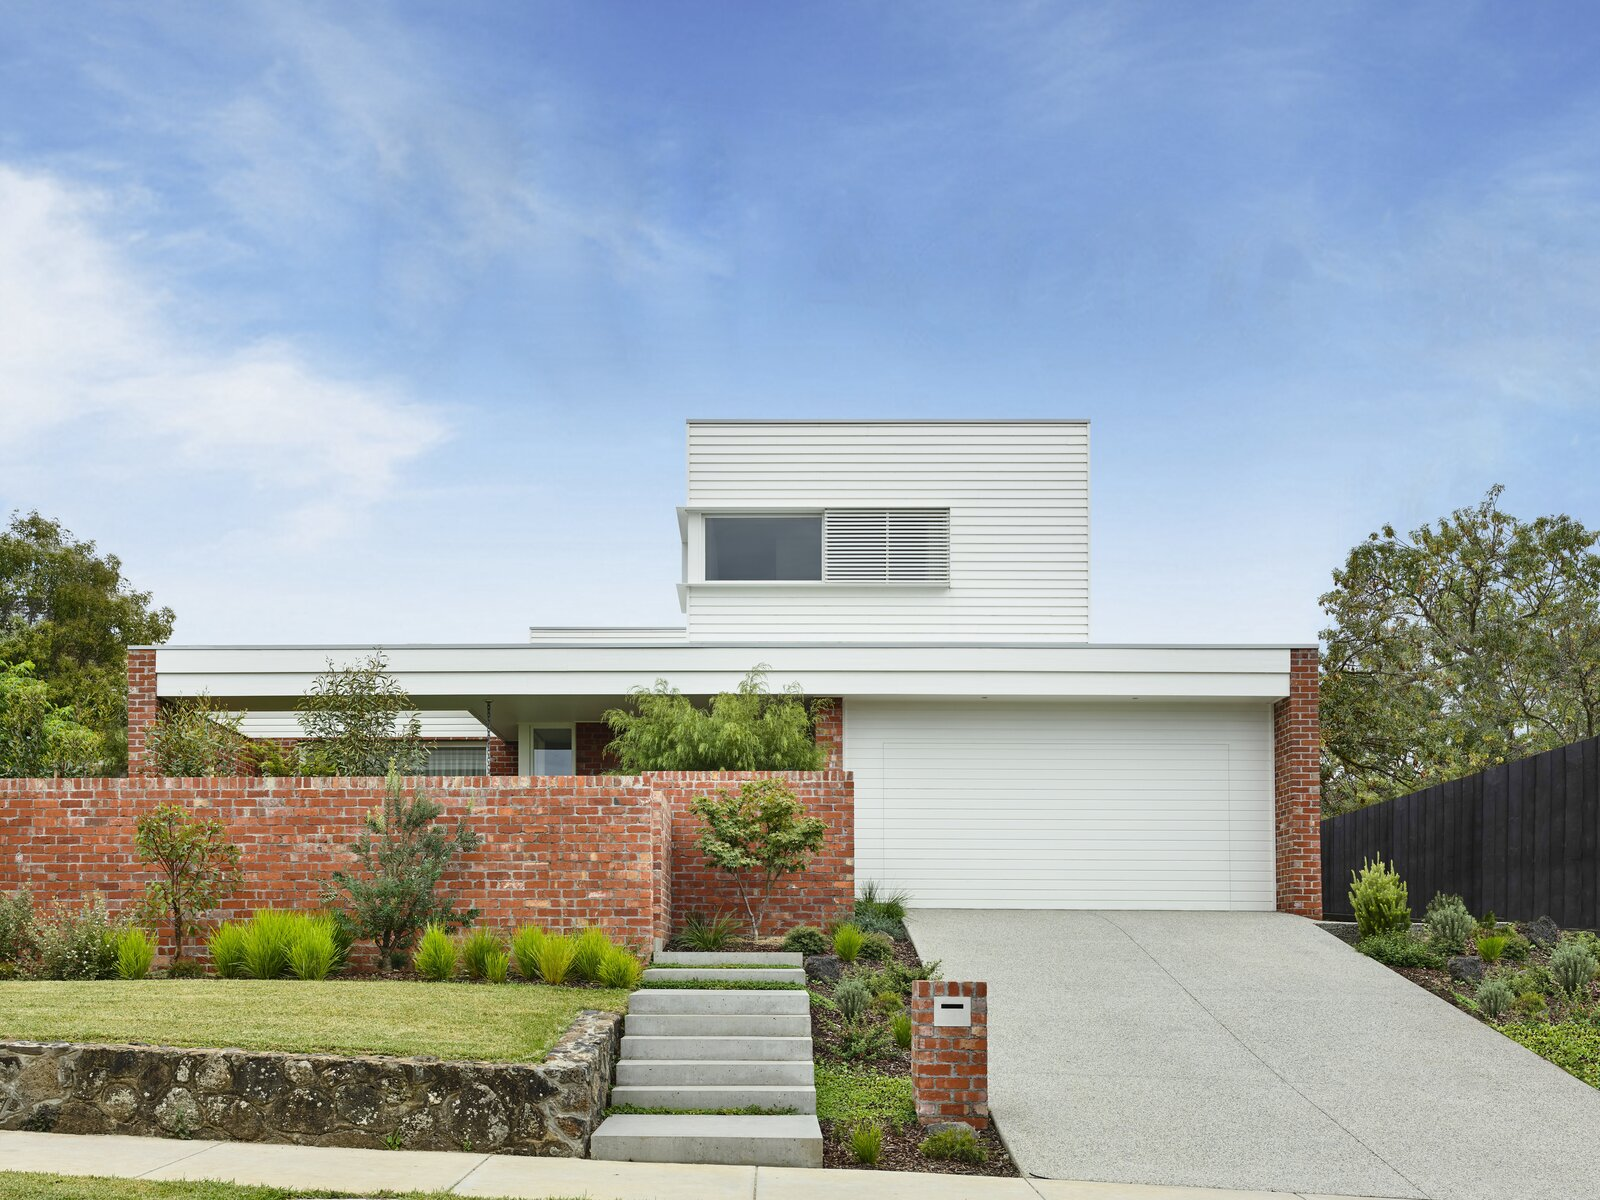 Photo 25 of 25 in This Melbourne Home Sits Pretty on a Slightly Sloped Site